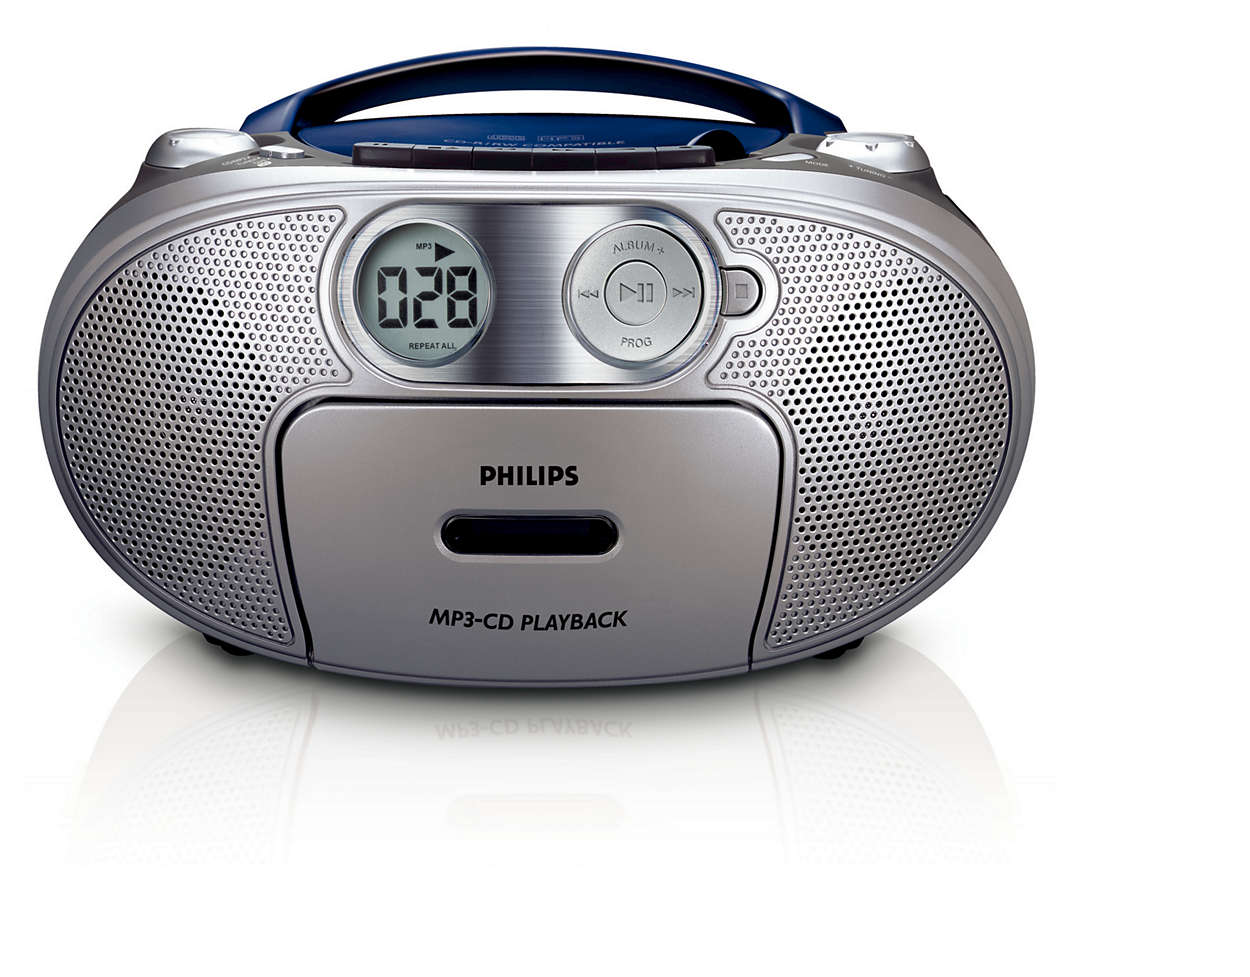 Musica MP3 con bassi più potenti all-in-one